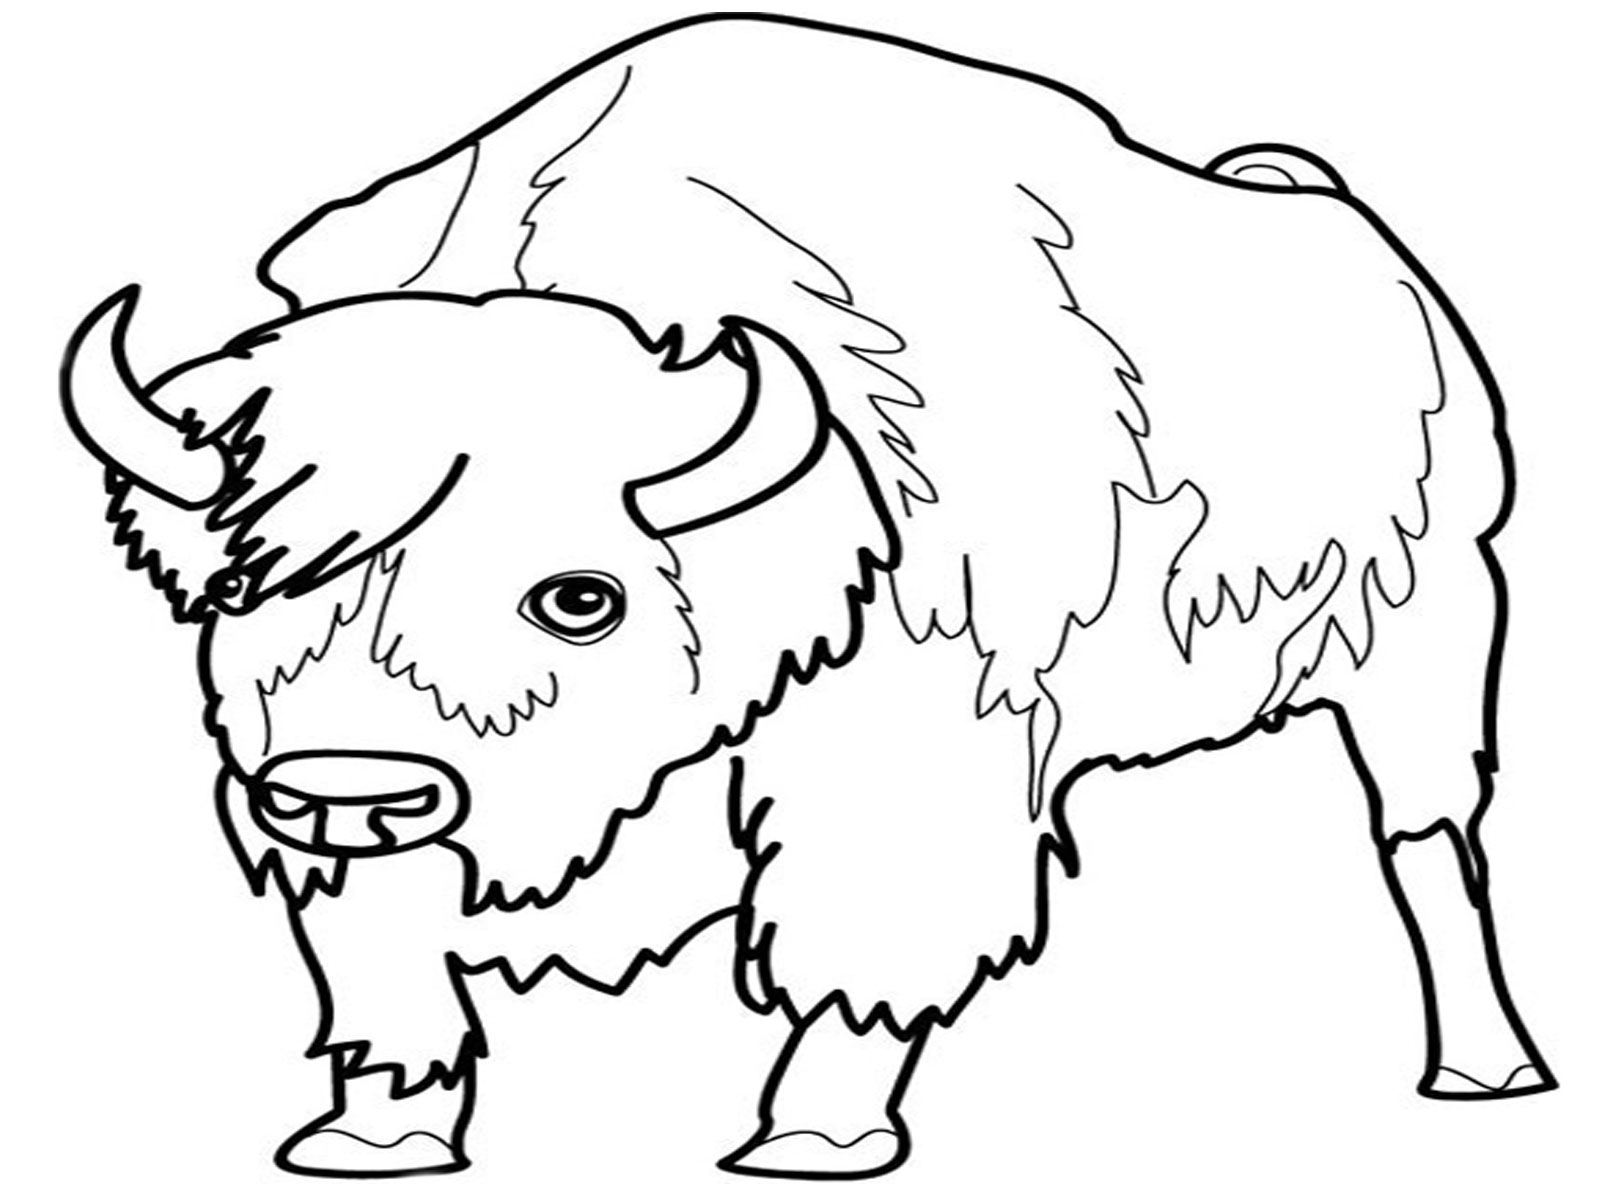 real looking coloring pages - photo#30